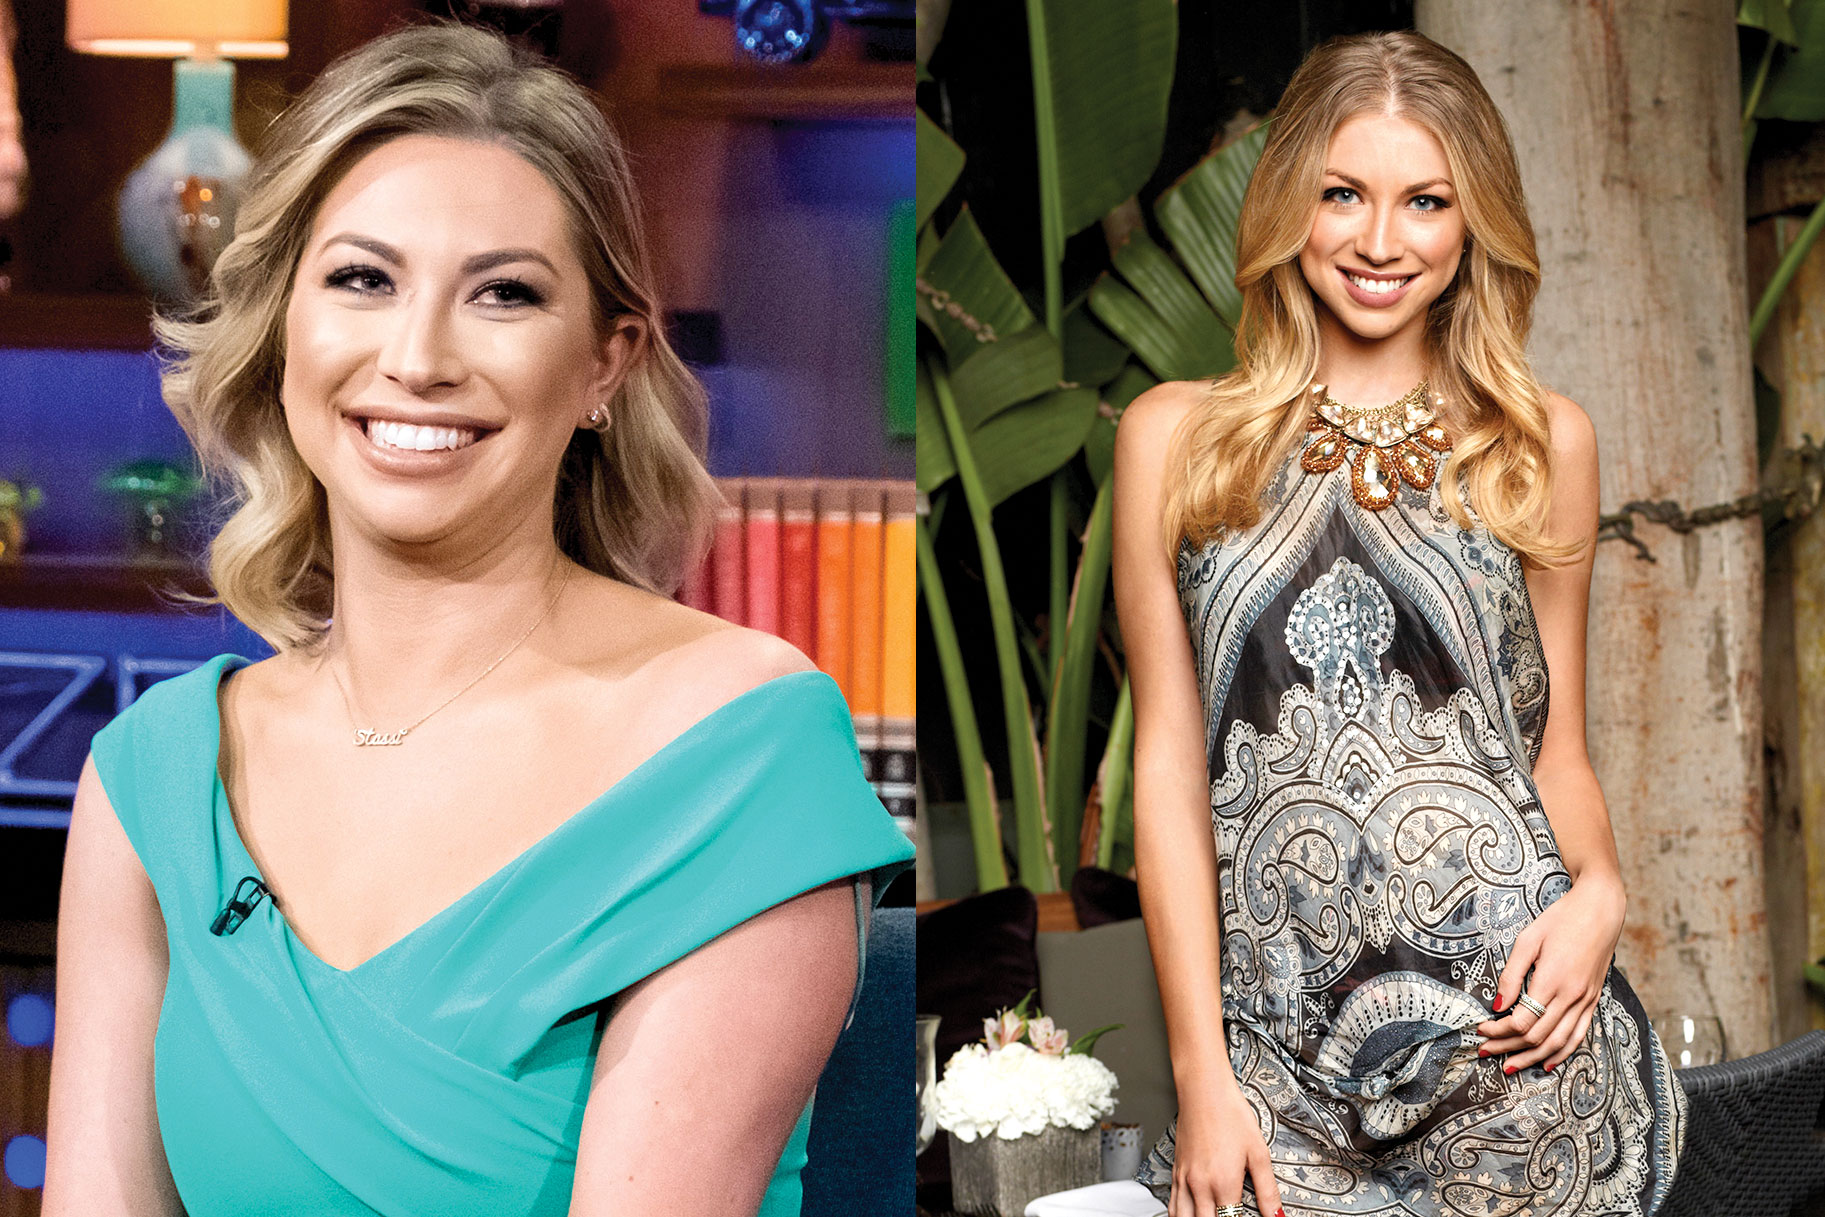 Stassi Schroeder Vanderpump Rules Fashion 1